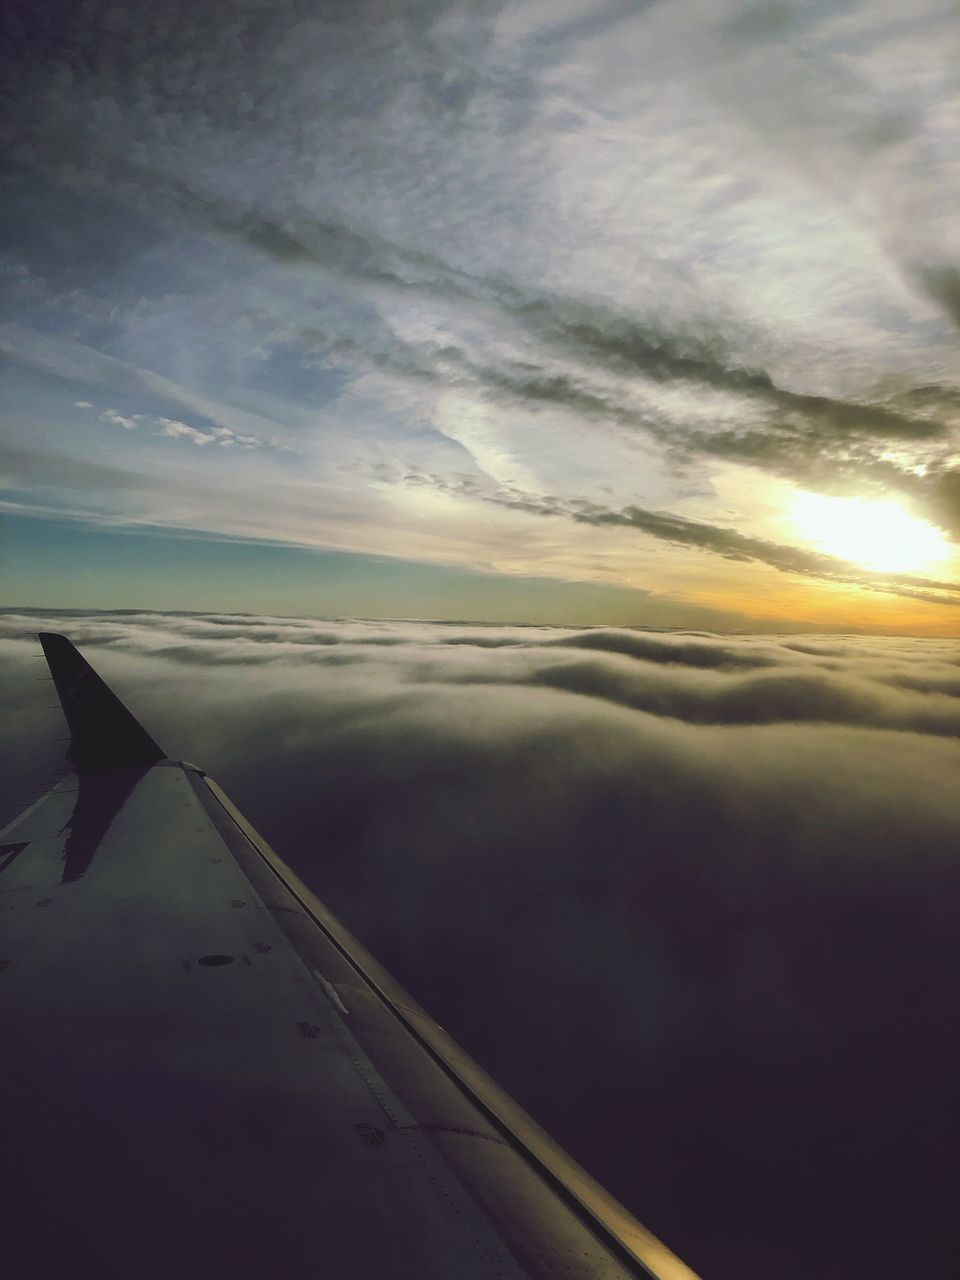 cloud - sky, sky, transportation, air vehicle, sunset, airplane, mode of transportation, beauty in nature, scenics - nature, nature, no people, flying, aircraft wing, travel, mid-air, outdoors, tranquility, motion, tranquil scene, cloudscape